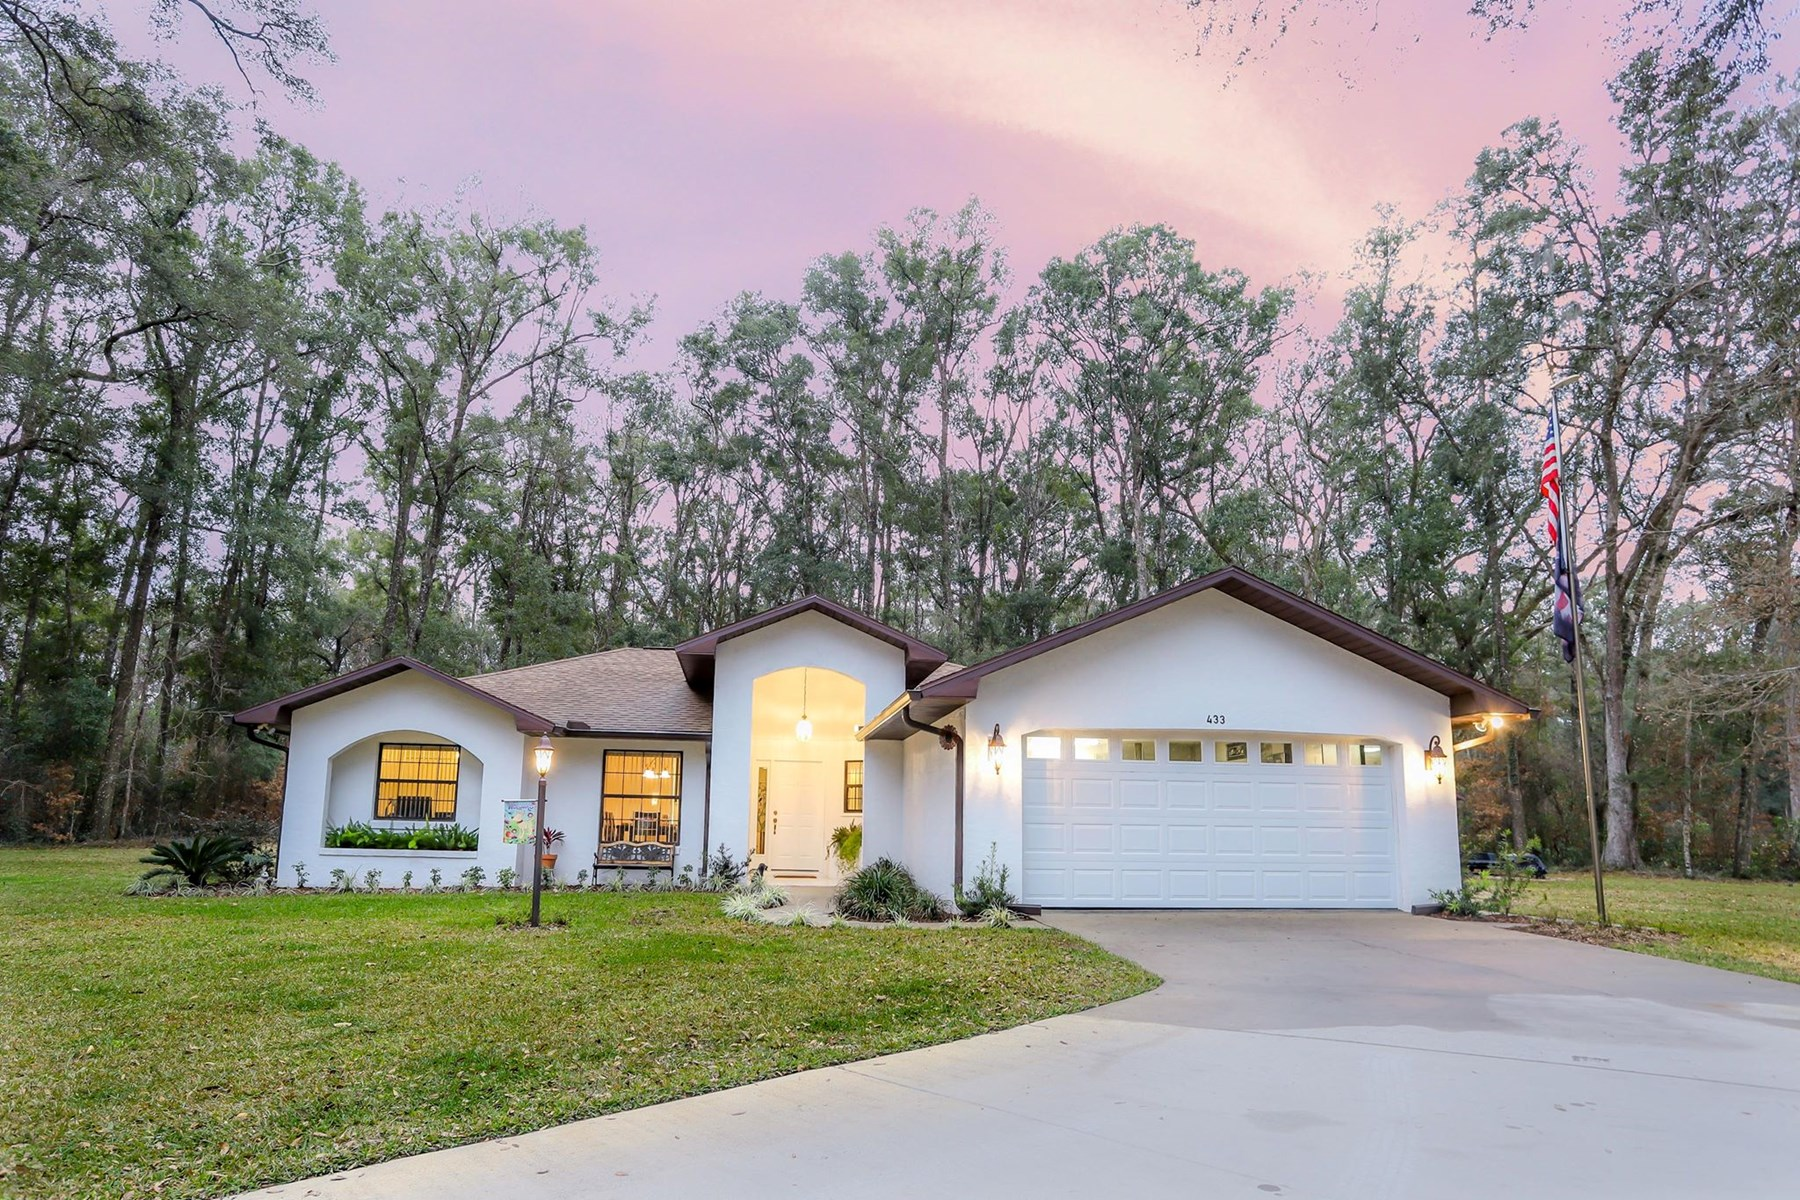 CUSTOM HOME FOR SALE IN OLD TOWN, FLORIDA - DIXIE COUNTY